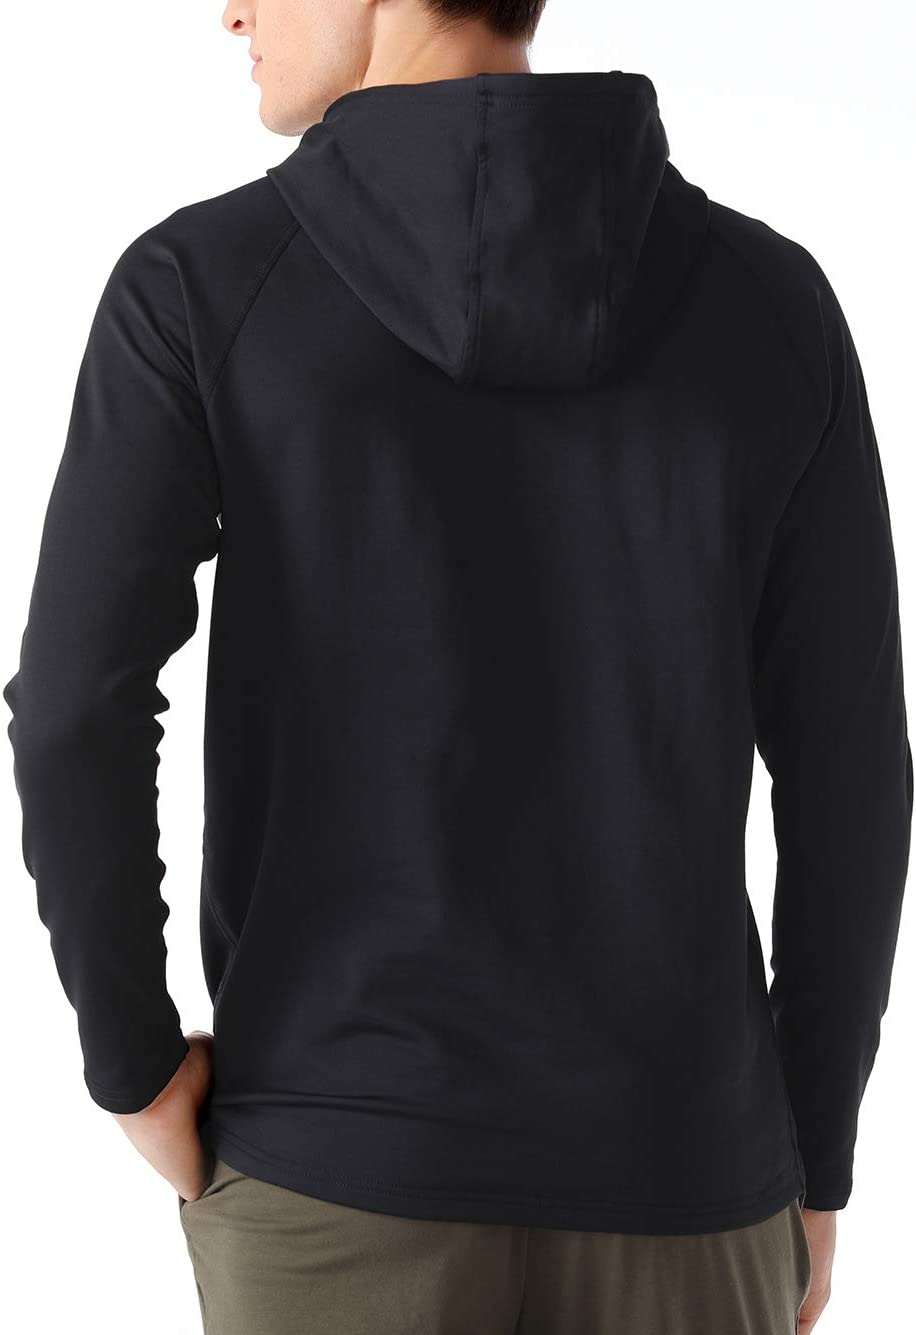 Ogeenier Le Sweat-Shirt /à Capuche pour Homme Pull Fleece Homme Sweats Casual Sweats De Sweat /À Capuche /à Manches Longues Homme Sweat avec Capuche Zip Sportif